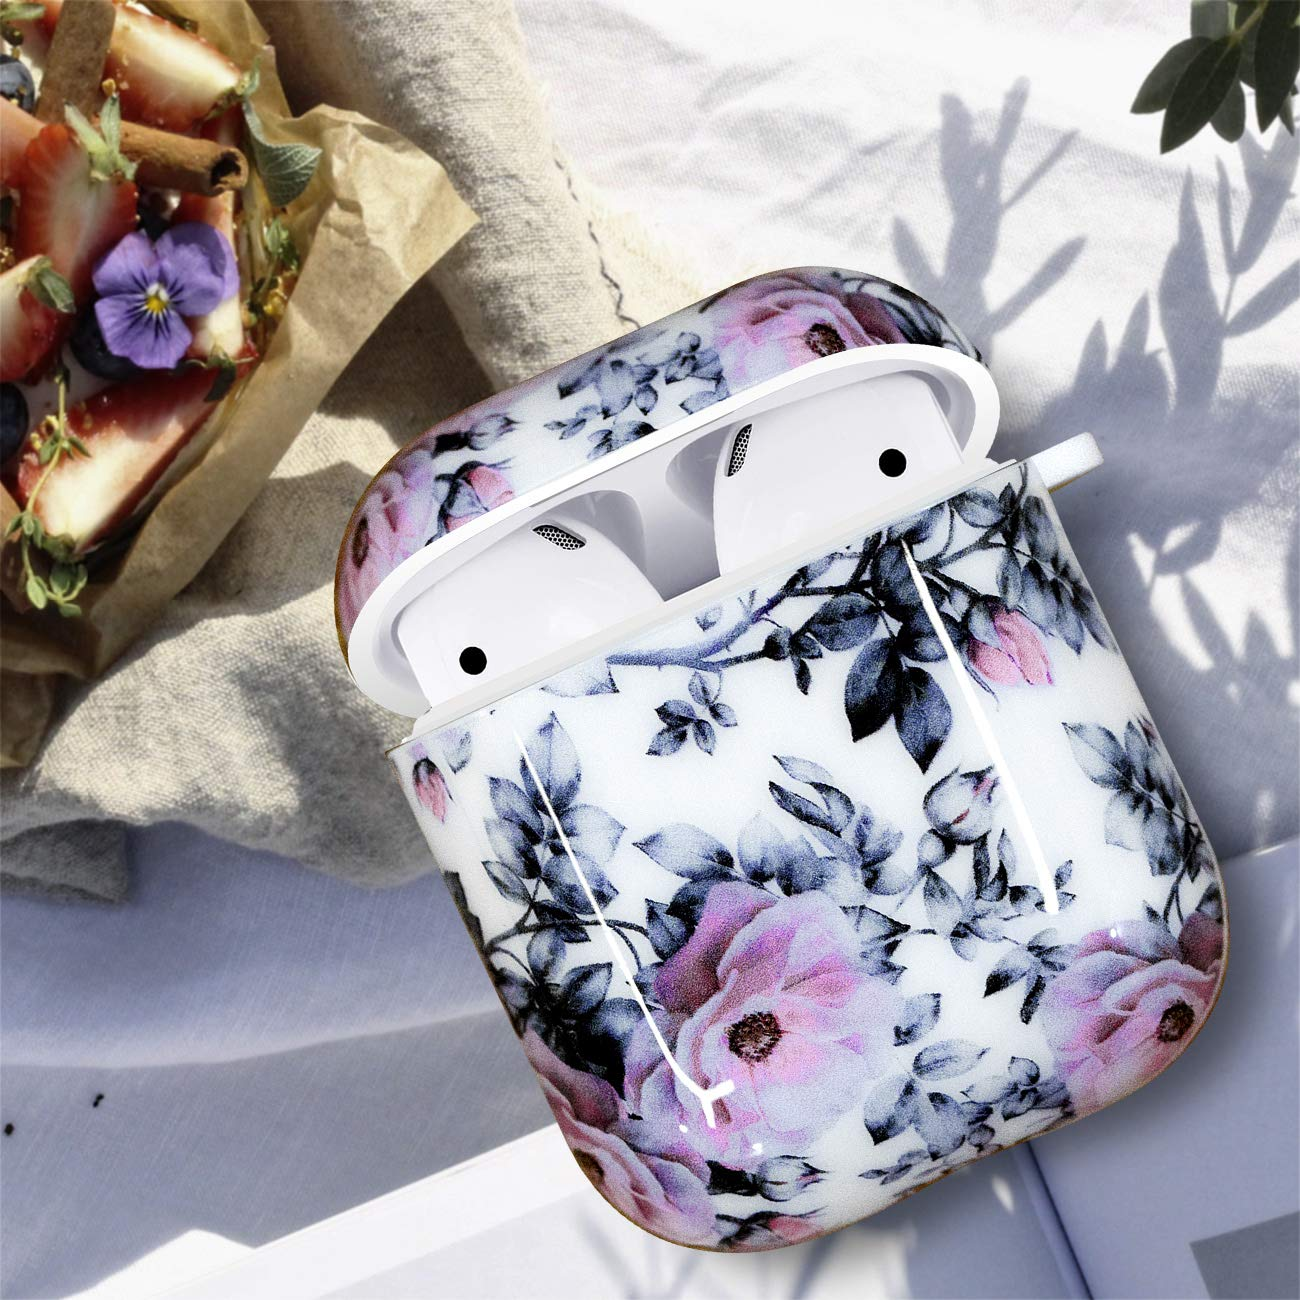 Airpods Case White LitoDream White Marble Airpod Case Accessories Protective Hard Case Cover Portable /& Shockproof Women Girls Men with Keychain for Apple Airpods 2//1 Charging Case